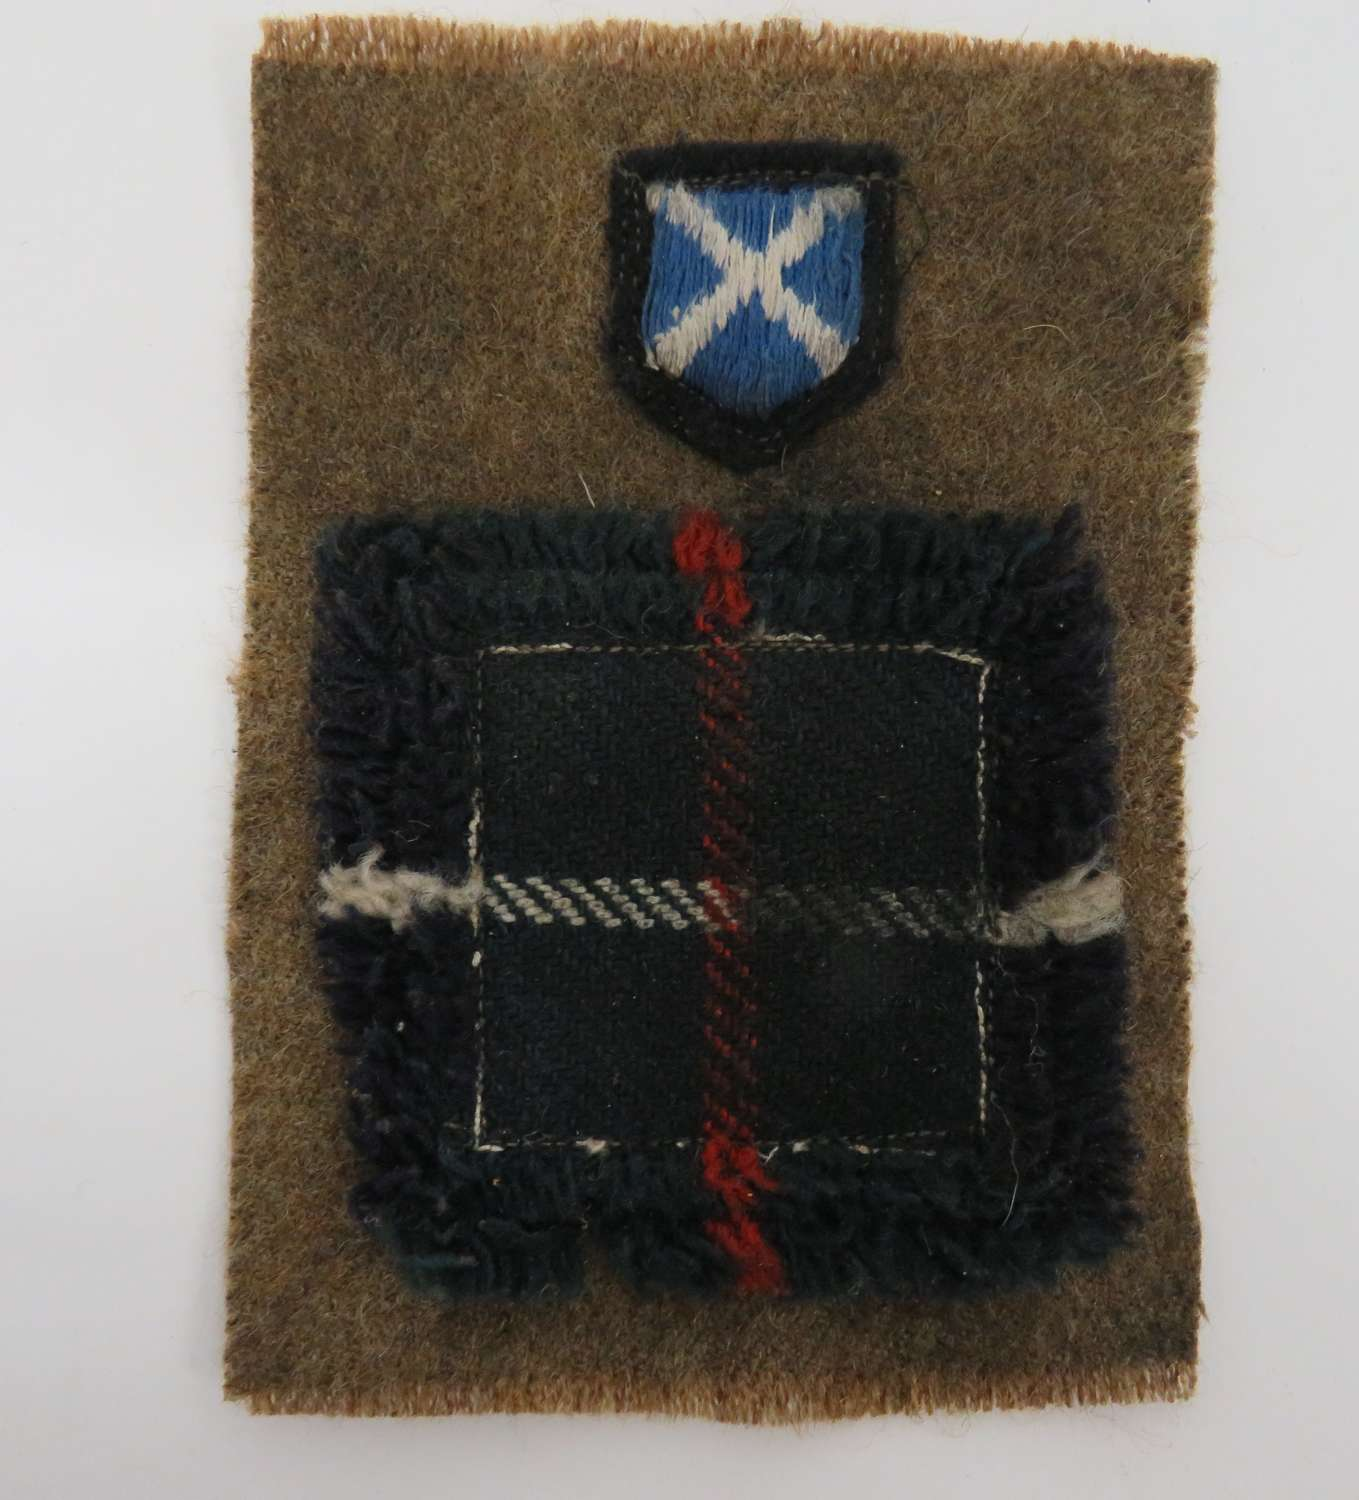 52nd Scottish Infantry Battle Badge